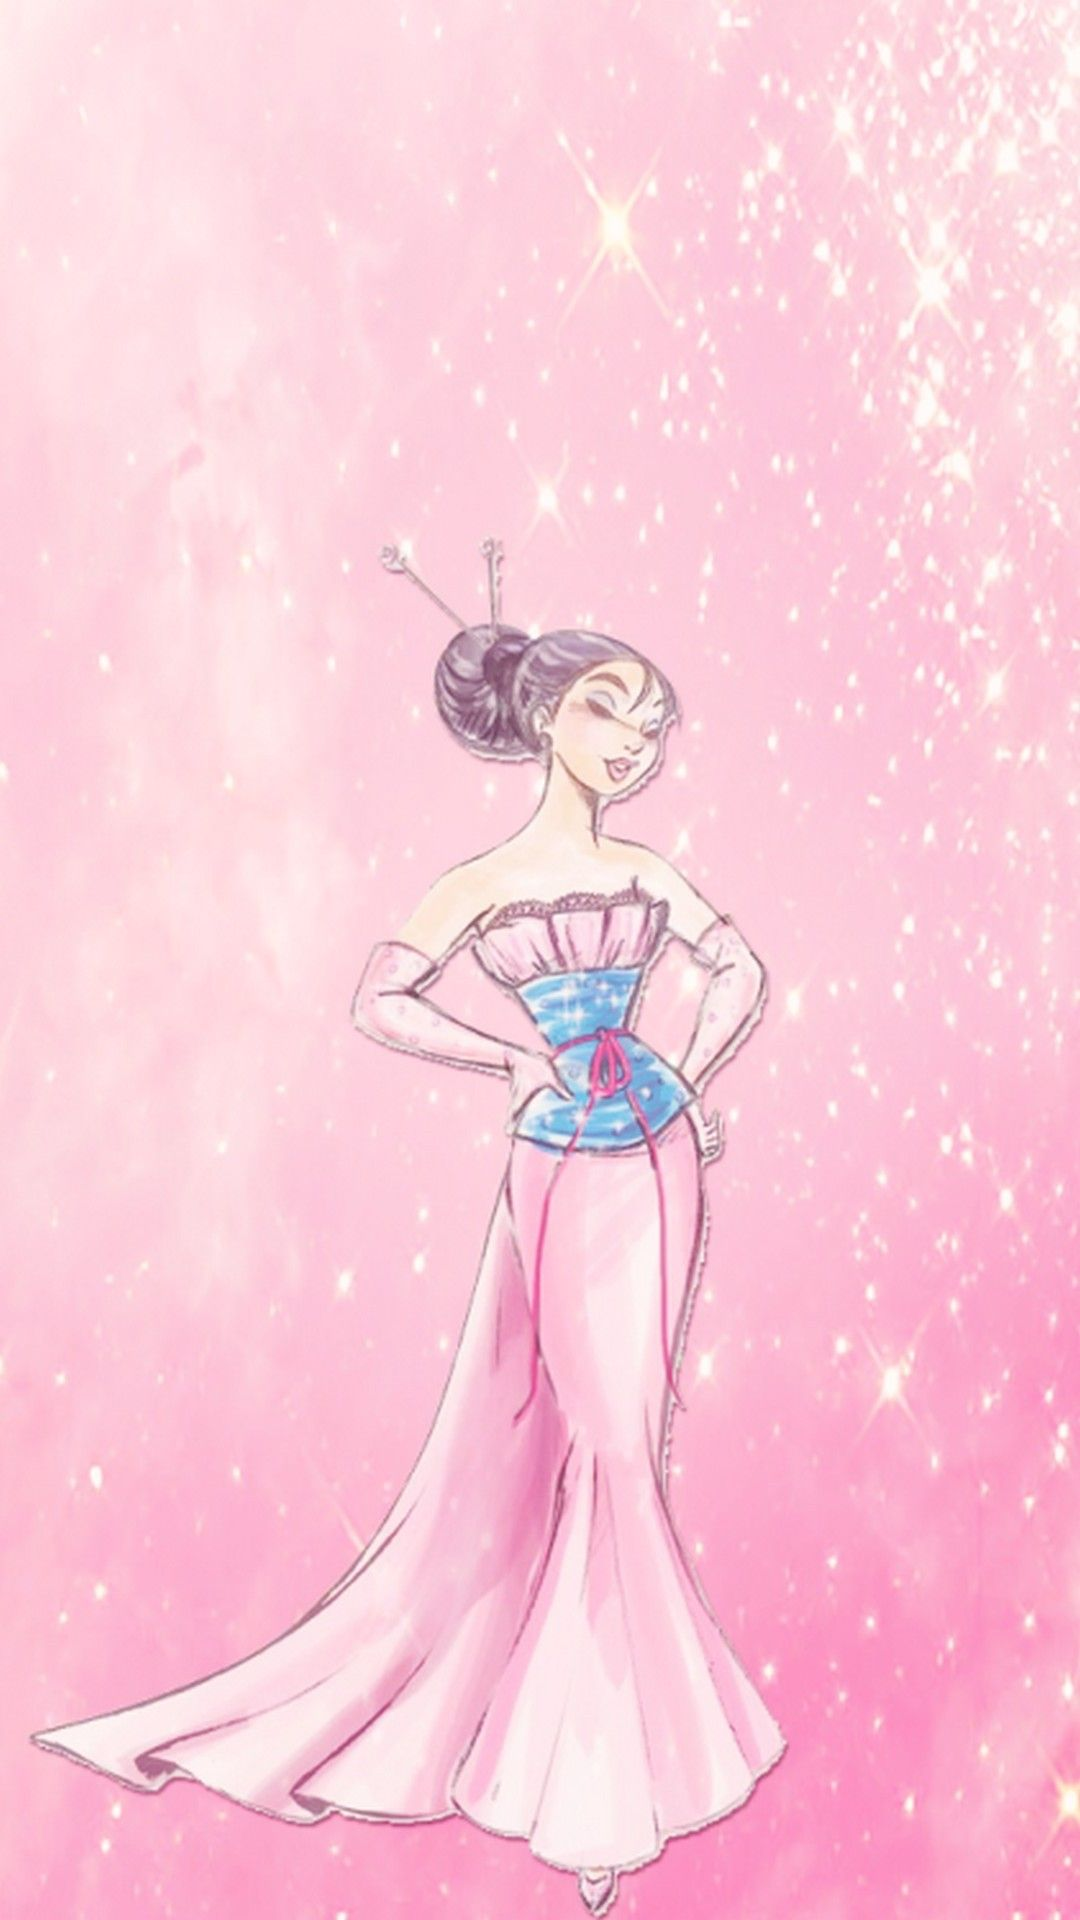 Mulan Disney Mobile Wallpaper Best HD Wallpapers 1080x1920